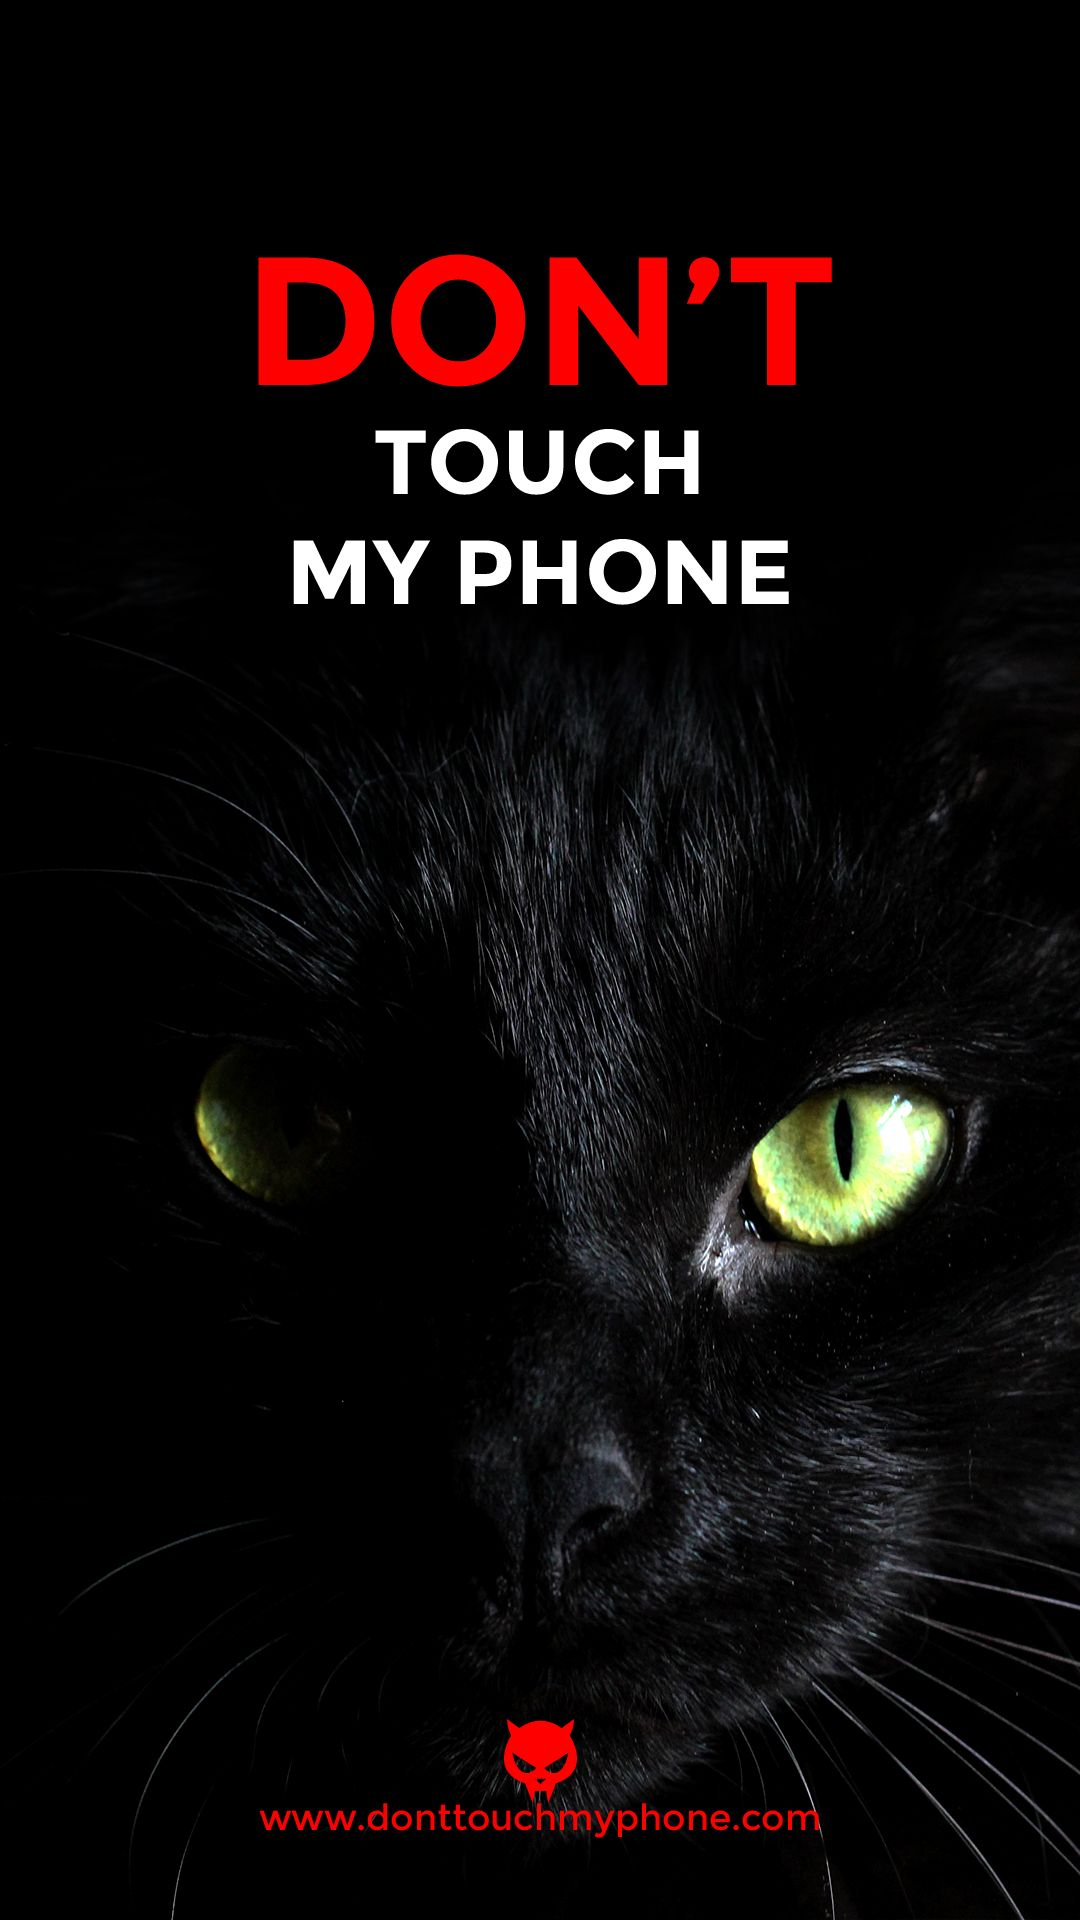 Cat Mobile Wallpaper Dont Touch My Phone Wallpapers Funny Phone Wallpaper Pretty Phone Wallpaper